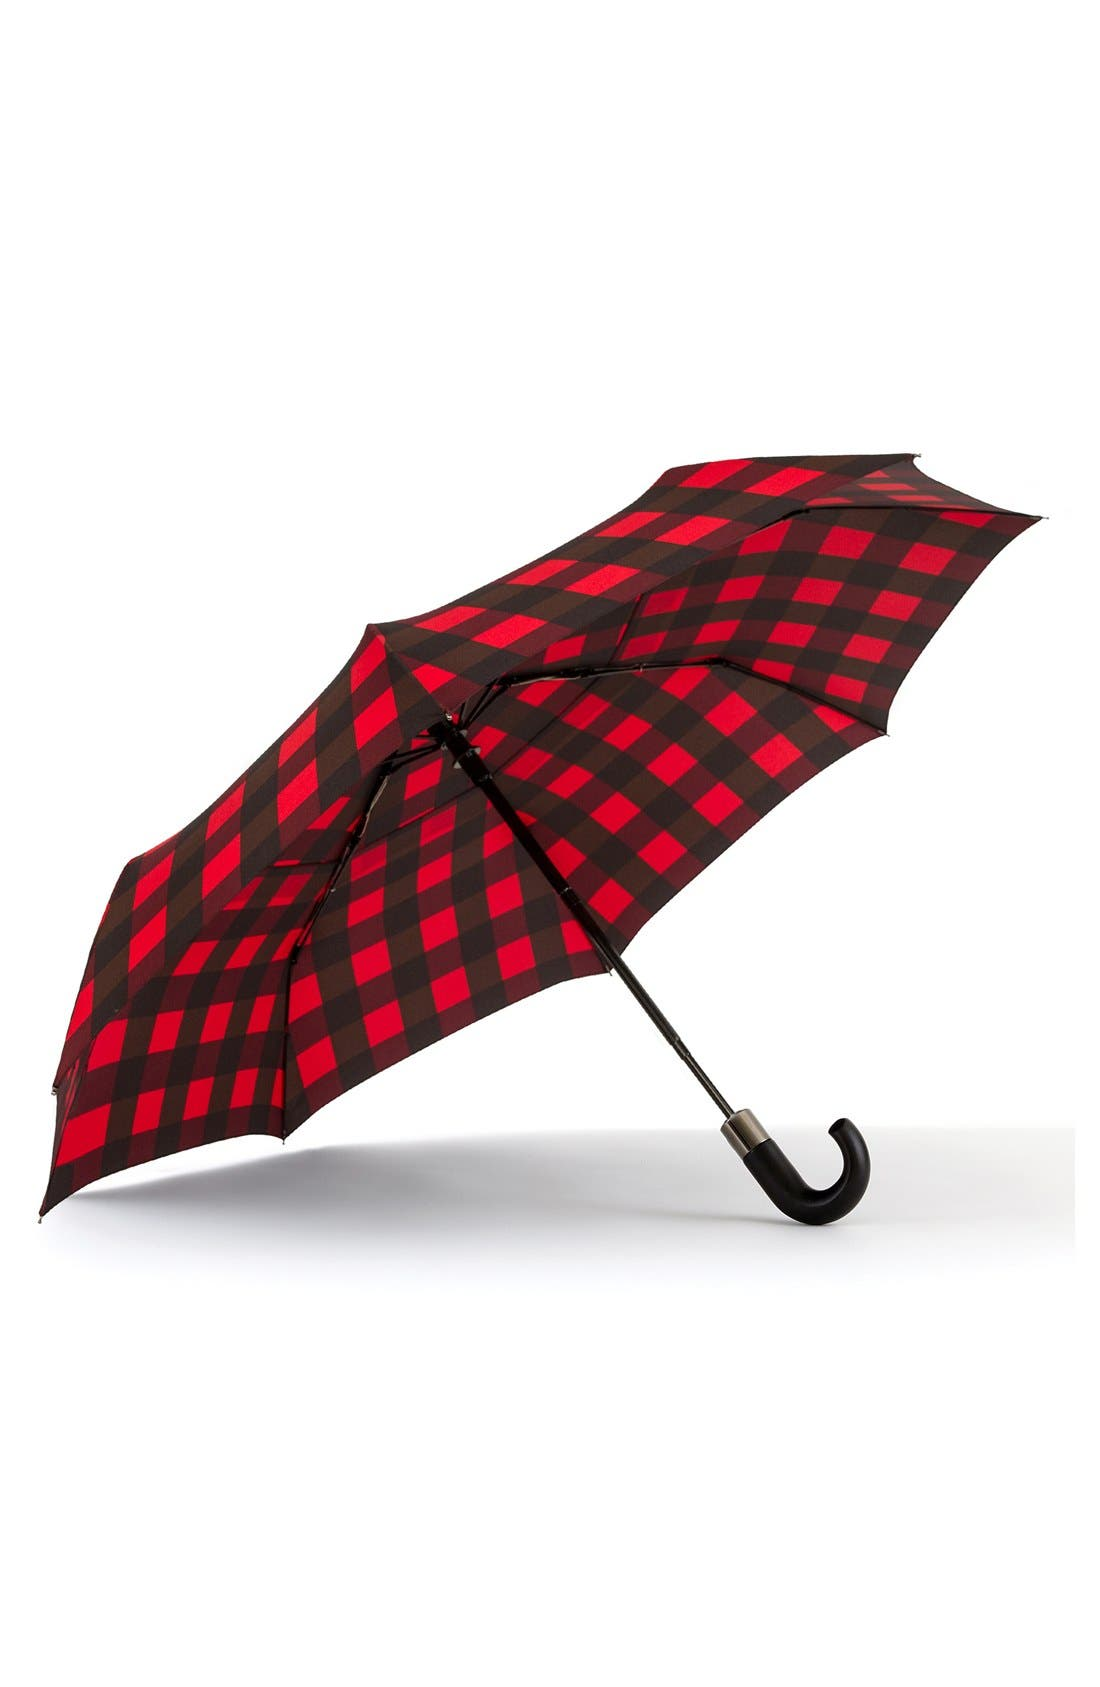 'WindPro<sup>®</sup>' Auto Open & Close Umbrella,                             Main thumbnail 1, color,                             Red